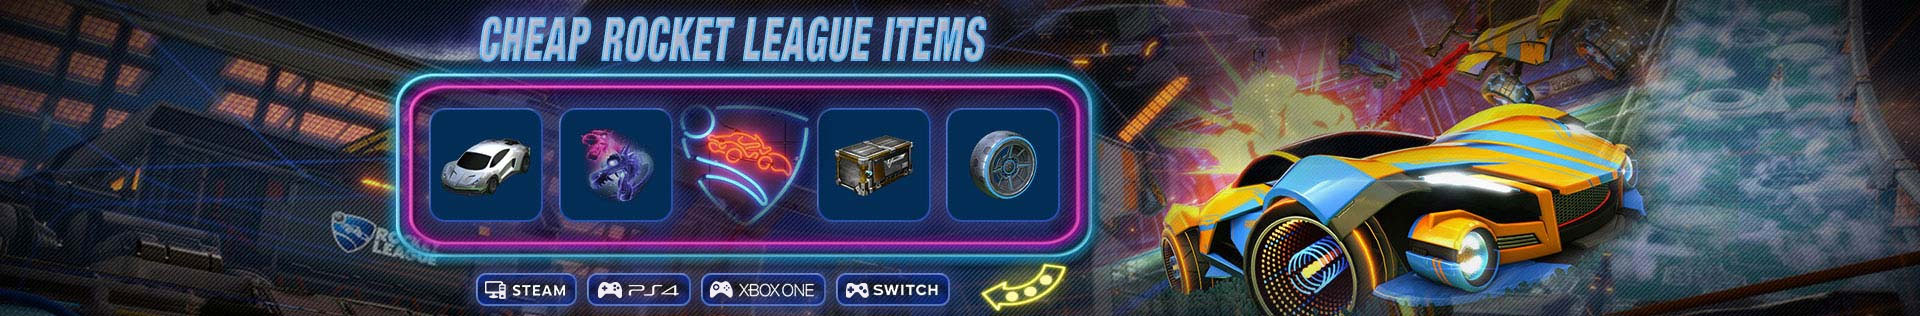 Rocket League Item